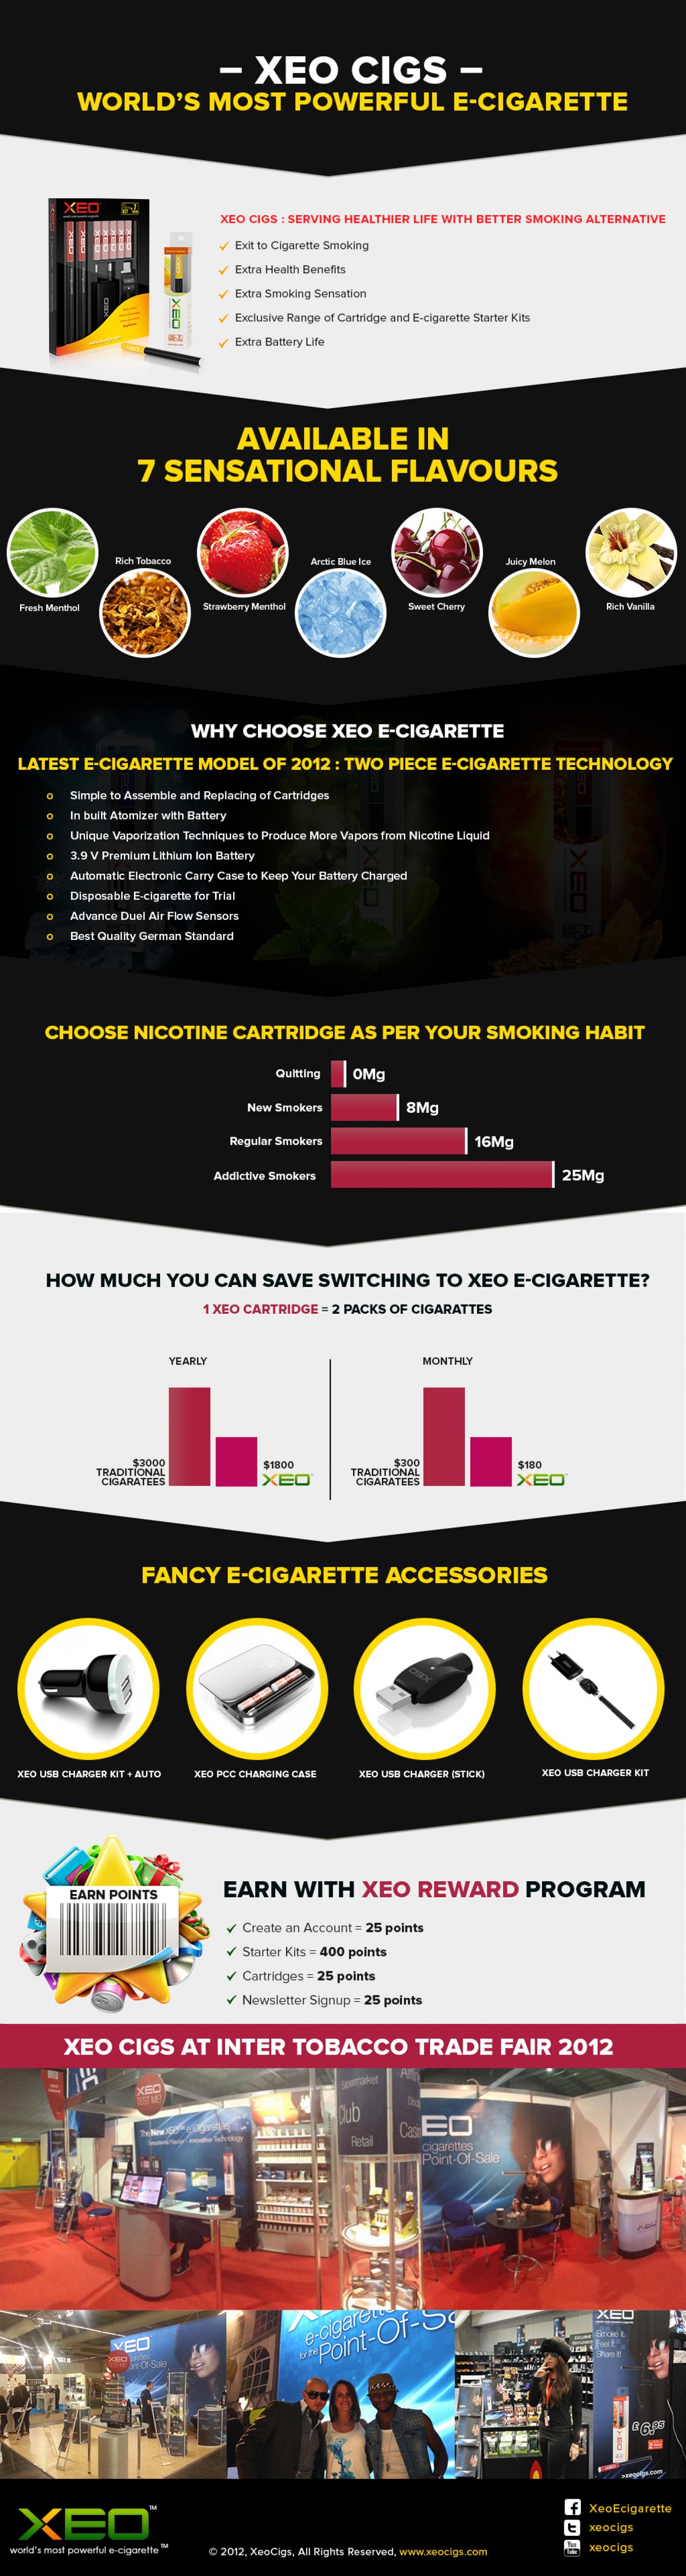 E-cigarette : Better Smoking Alternative Infographic